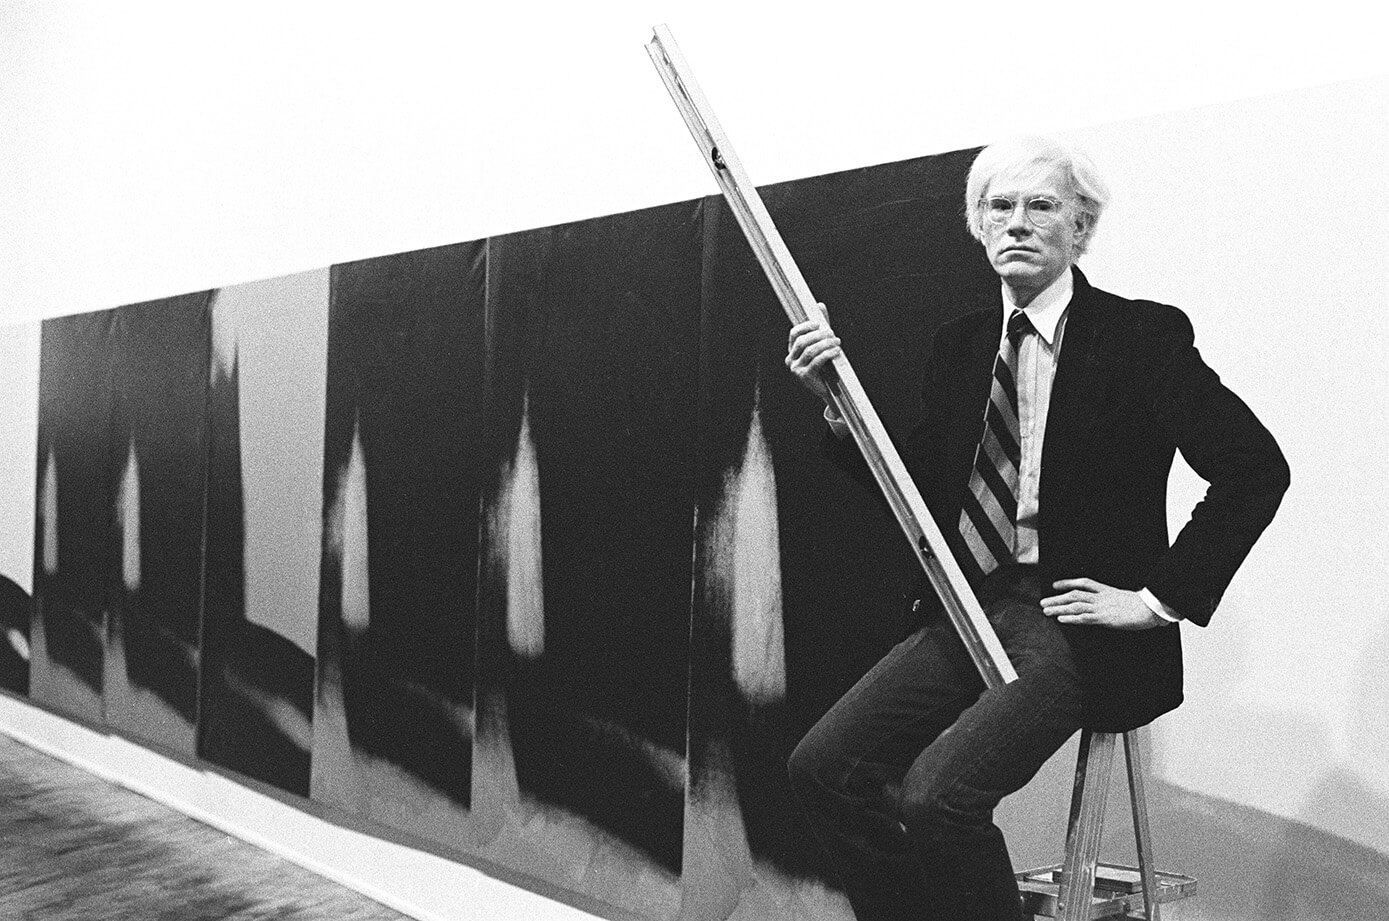 Andy Warhol (1928-1987) devant les Shadows à la Heiner Friedrich Gallery, New York, 1979.